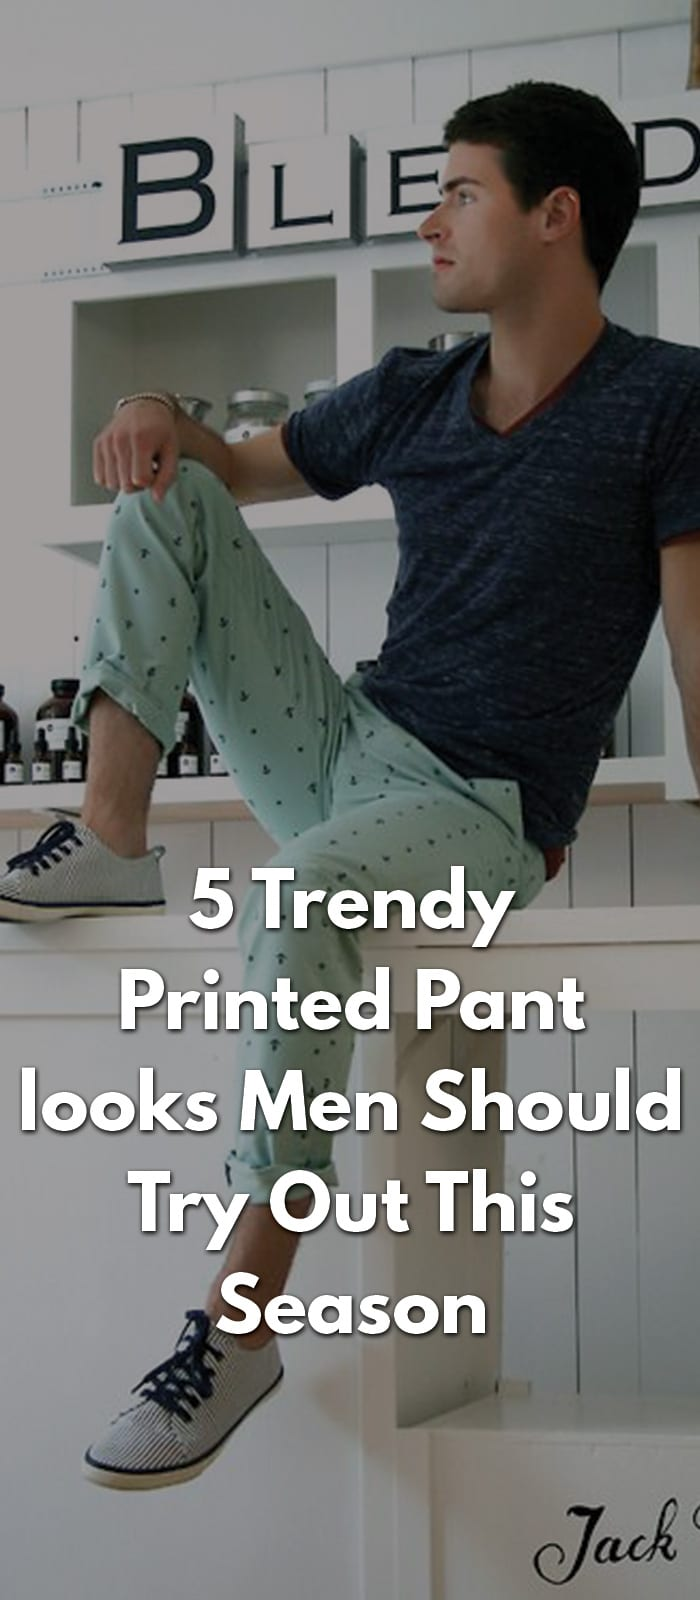 5 Trendy Printed Pant looks Men Should Try Out This Season